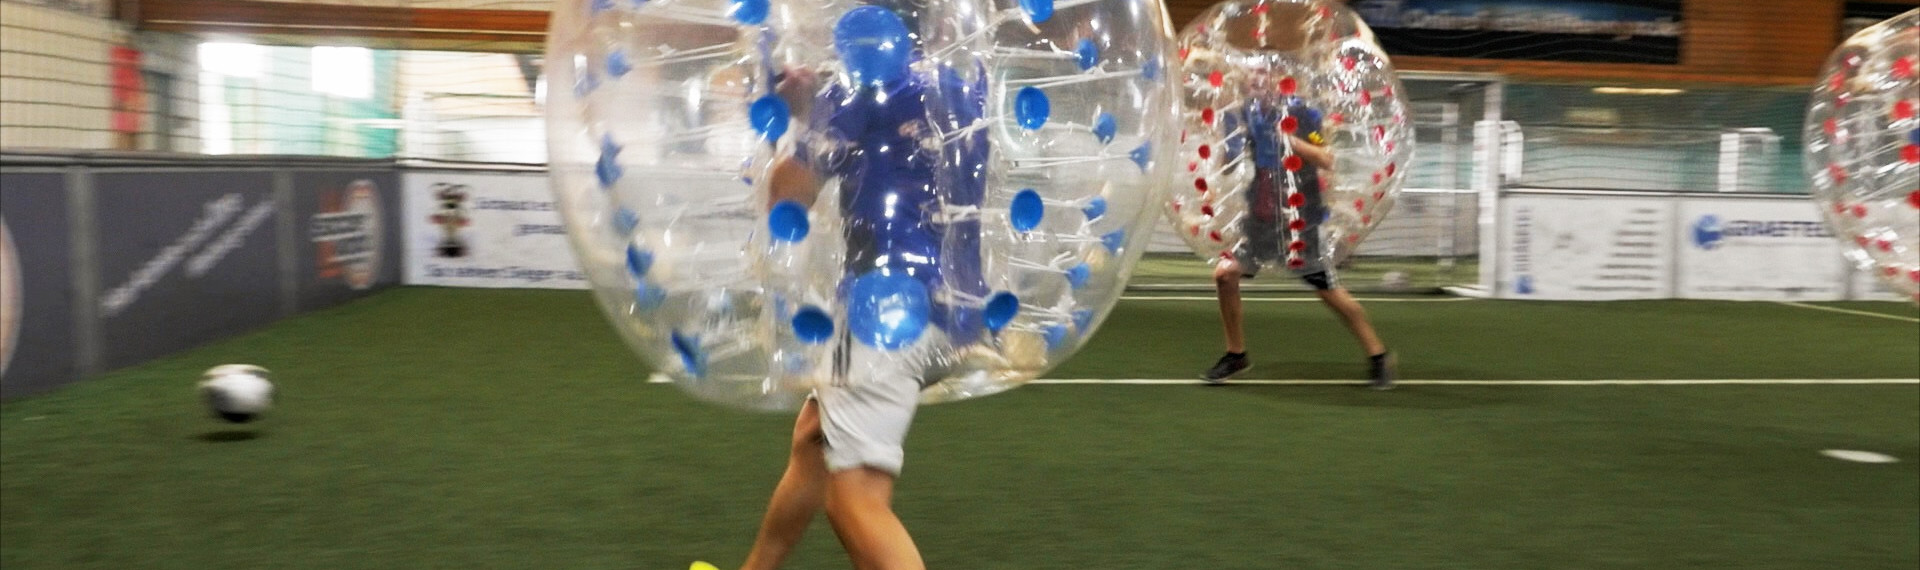 Cologne Indoor Bubble Football 4-a-Side image